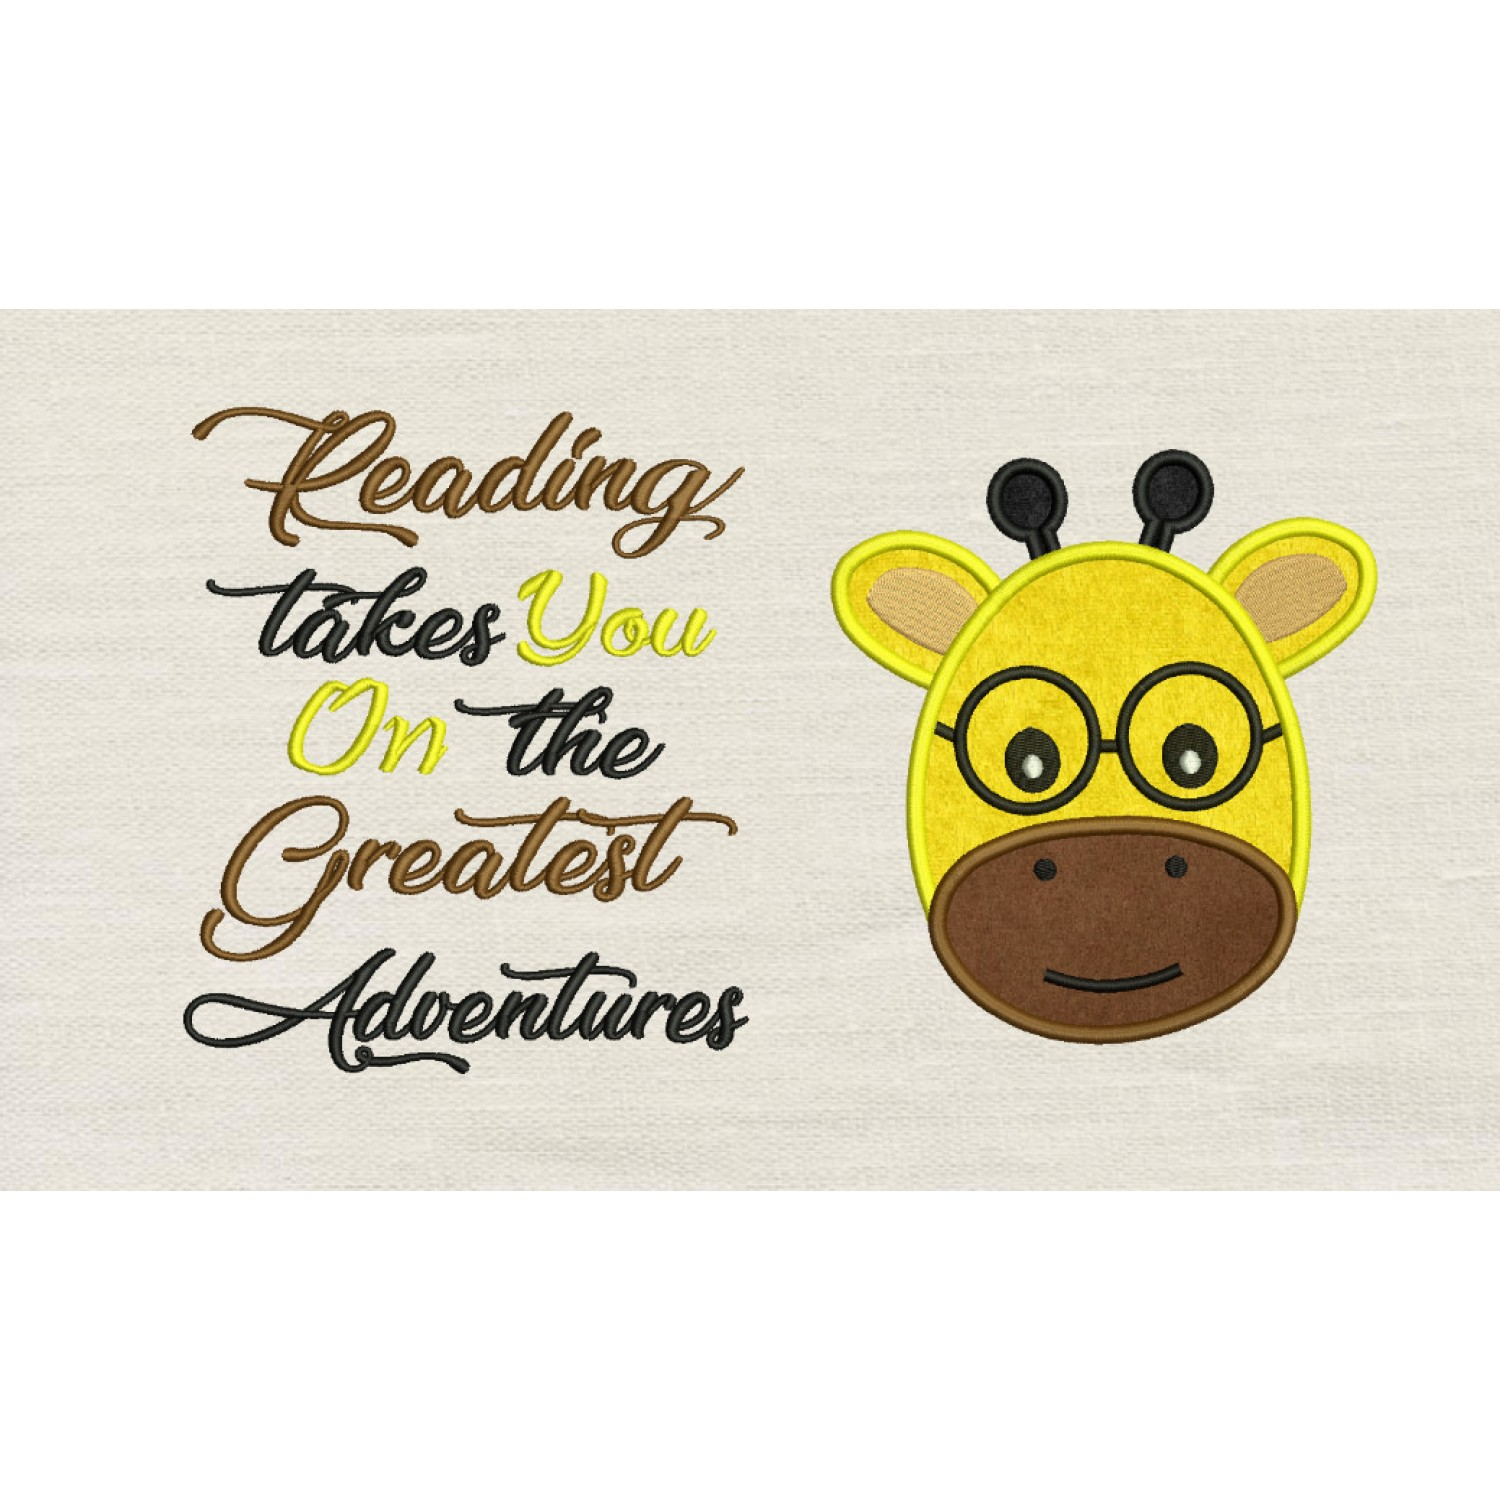 Baby giraffe face with reading takes you